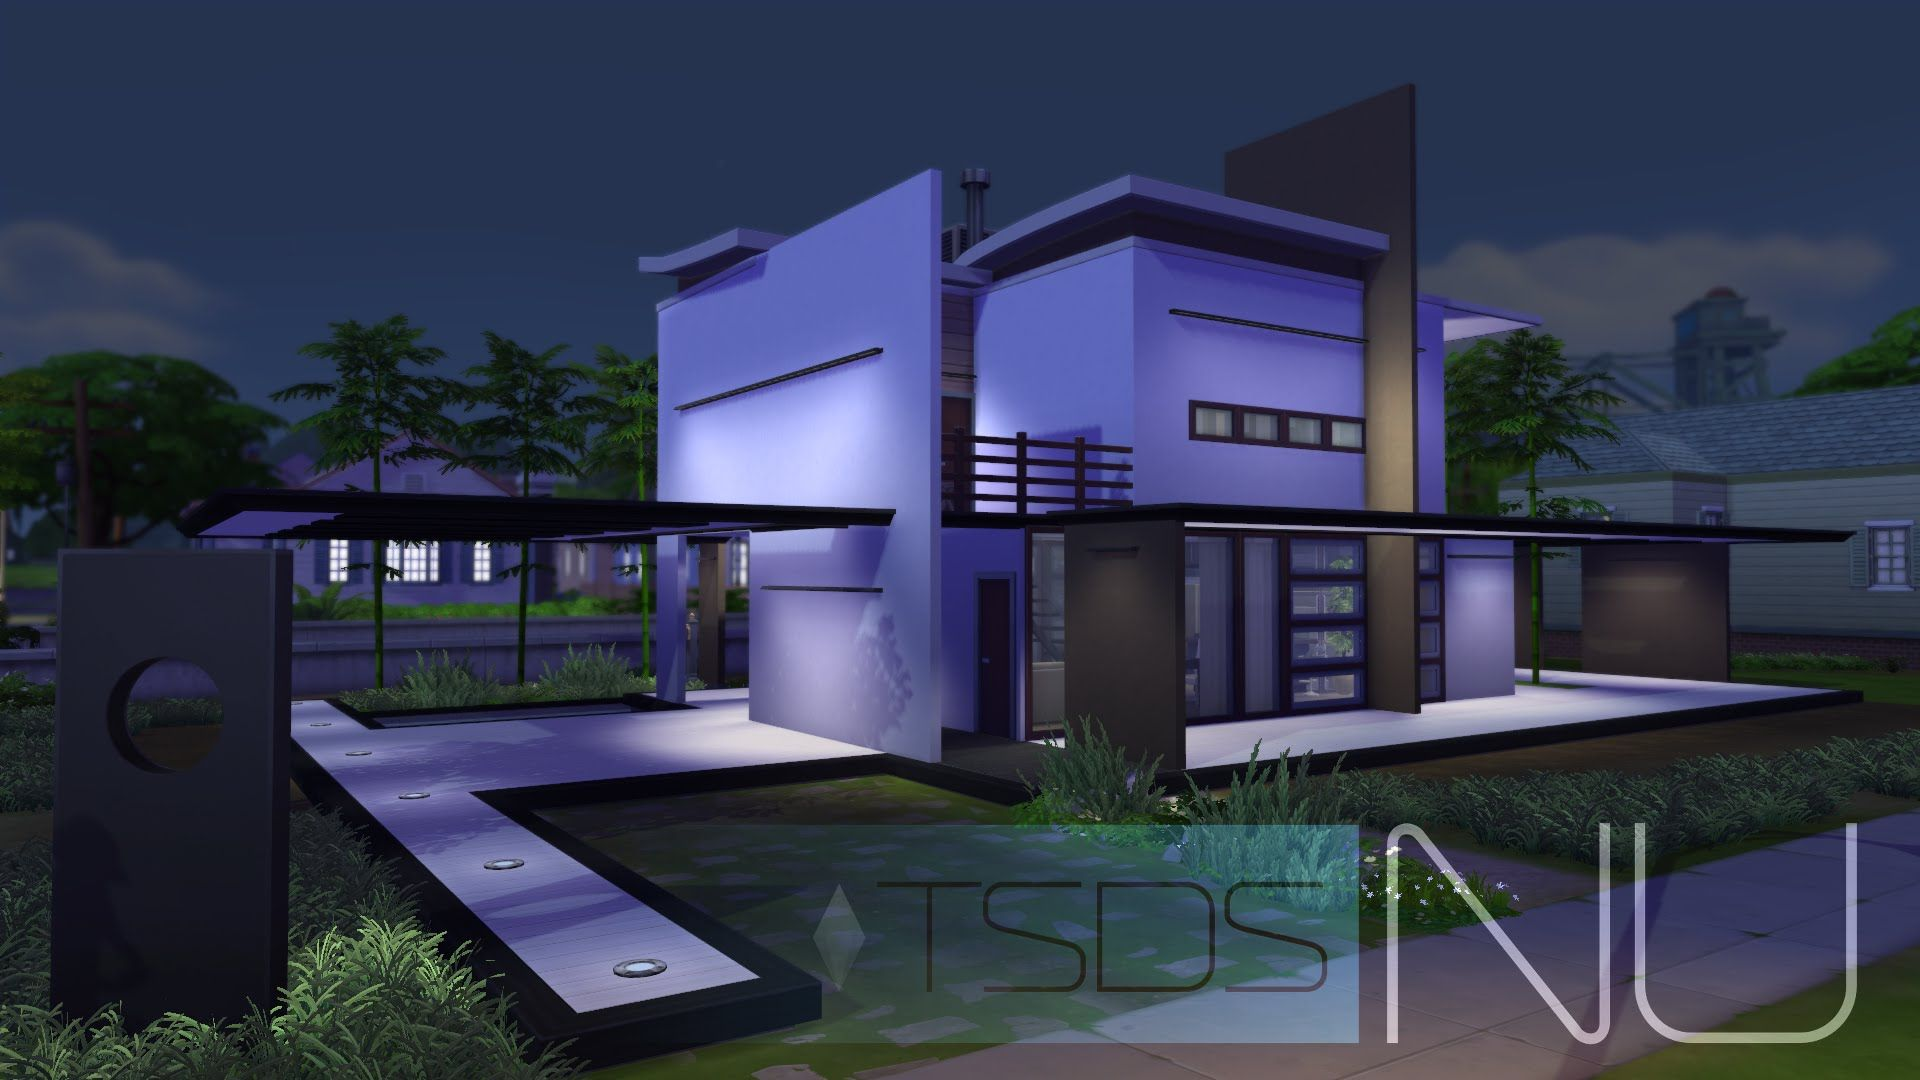 The sims 4 modern house modegant hd download the for Sims 4 modern house plans